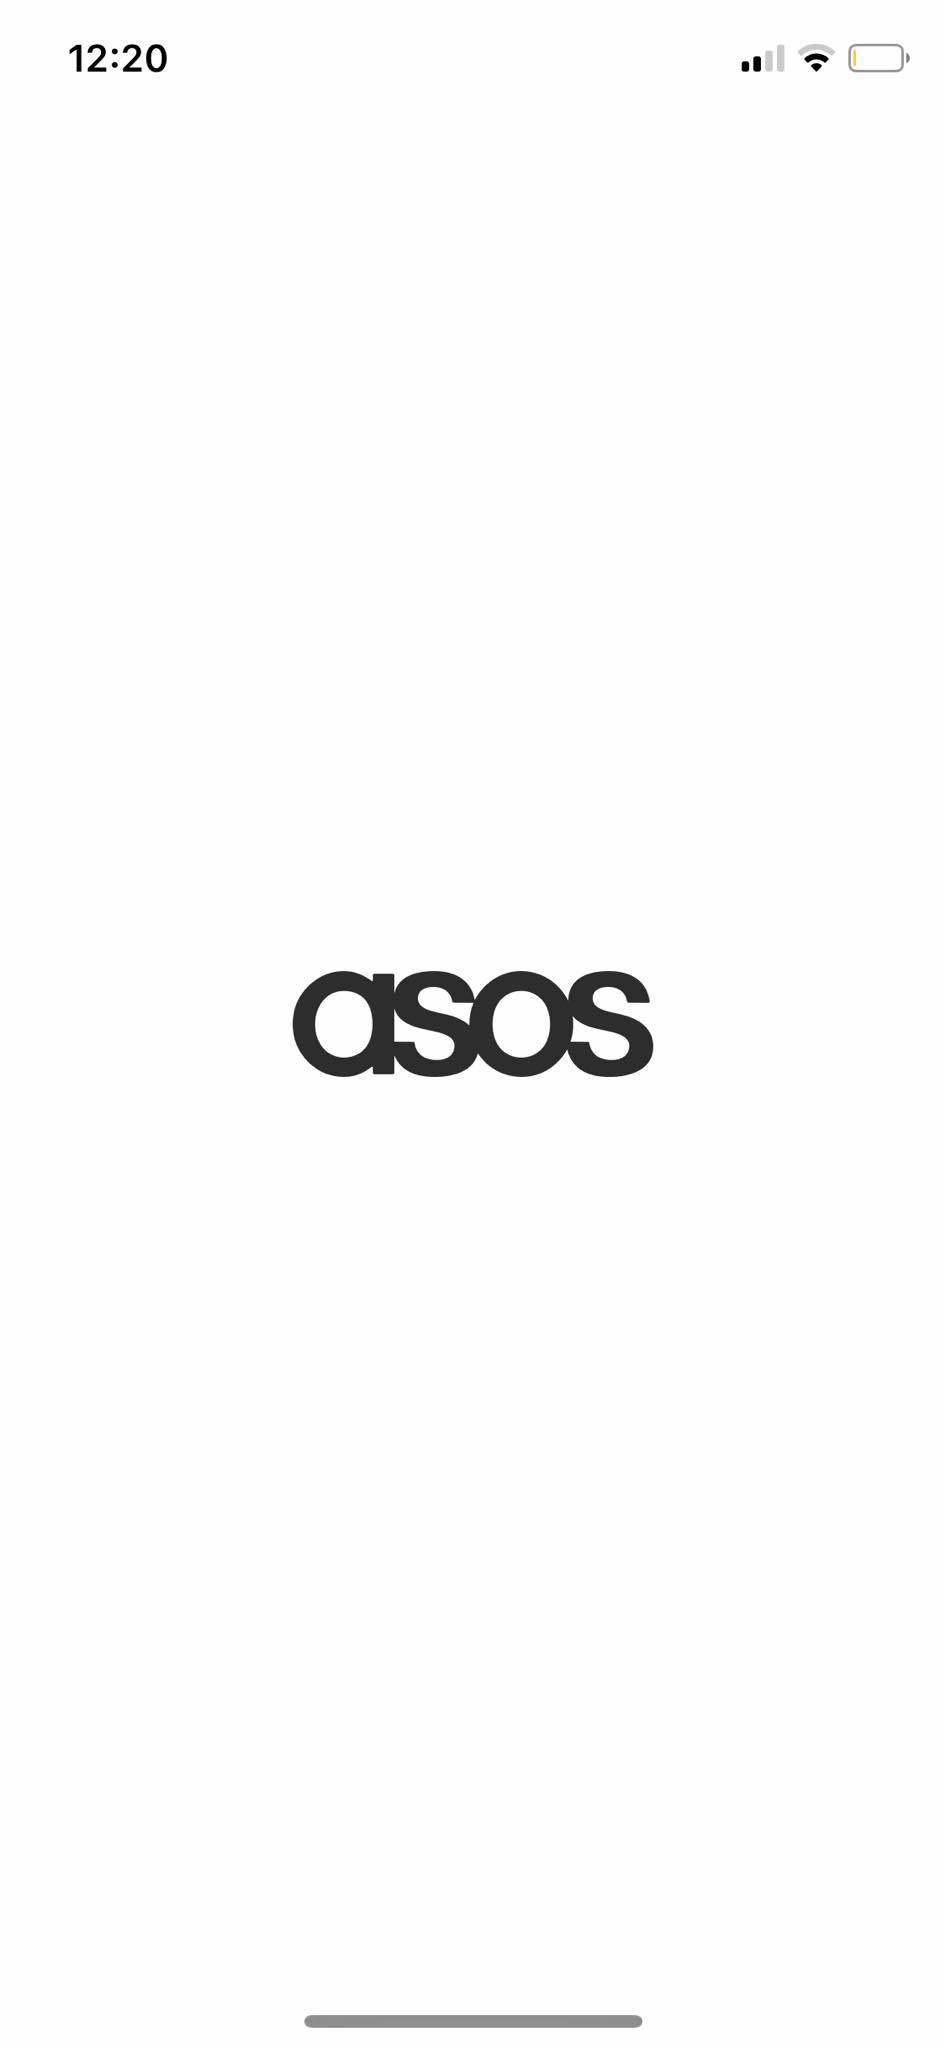 Launch Screen on iOS by Asos from UIGarage